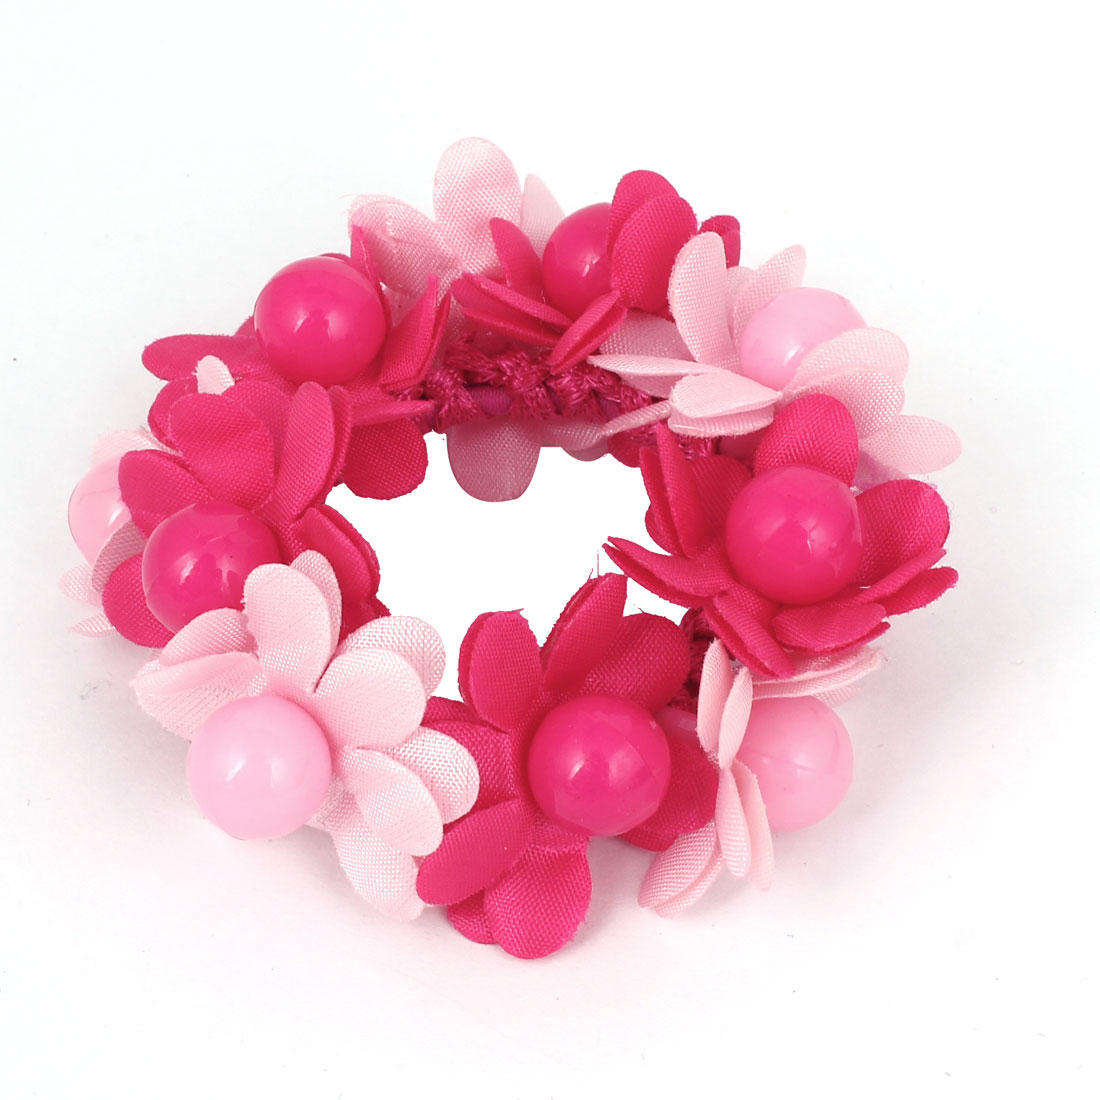 Women Fuchsia Pink Flowers Beads Decor Elastic Band Hair Tie Ponytail Holder